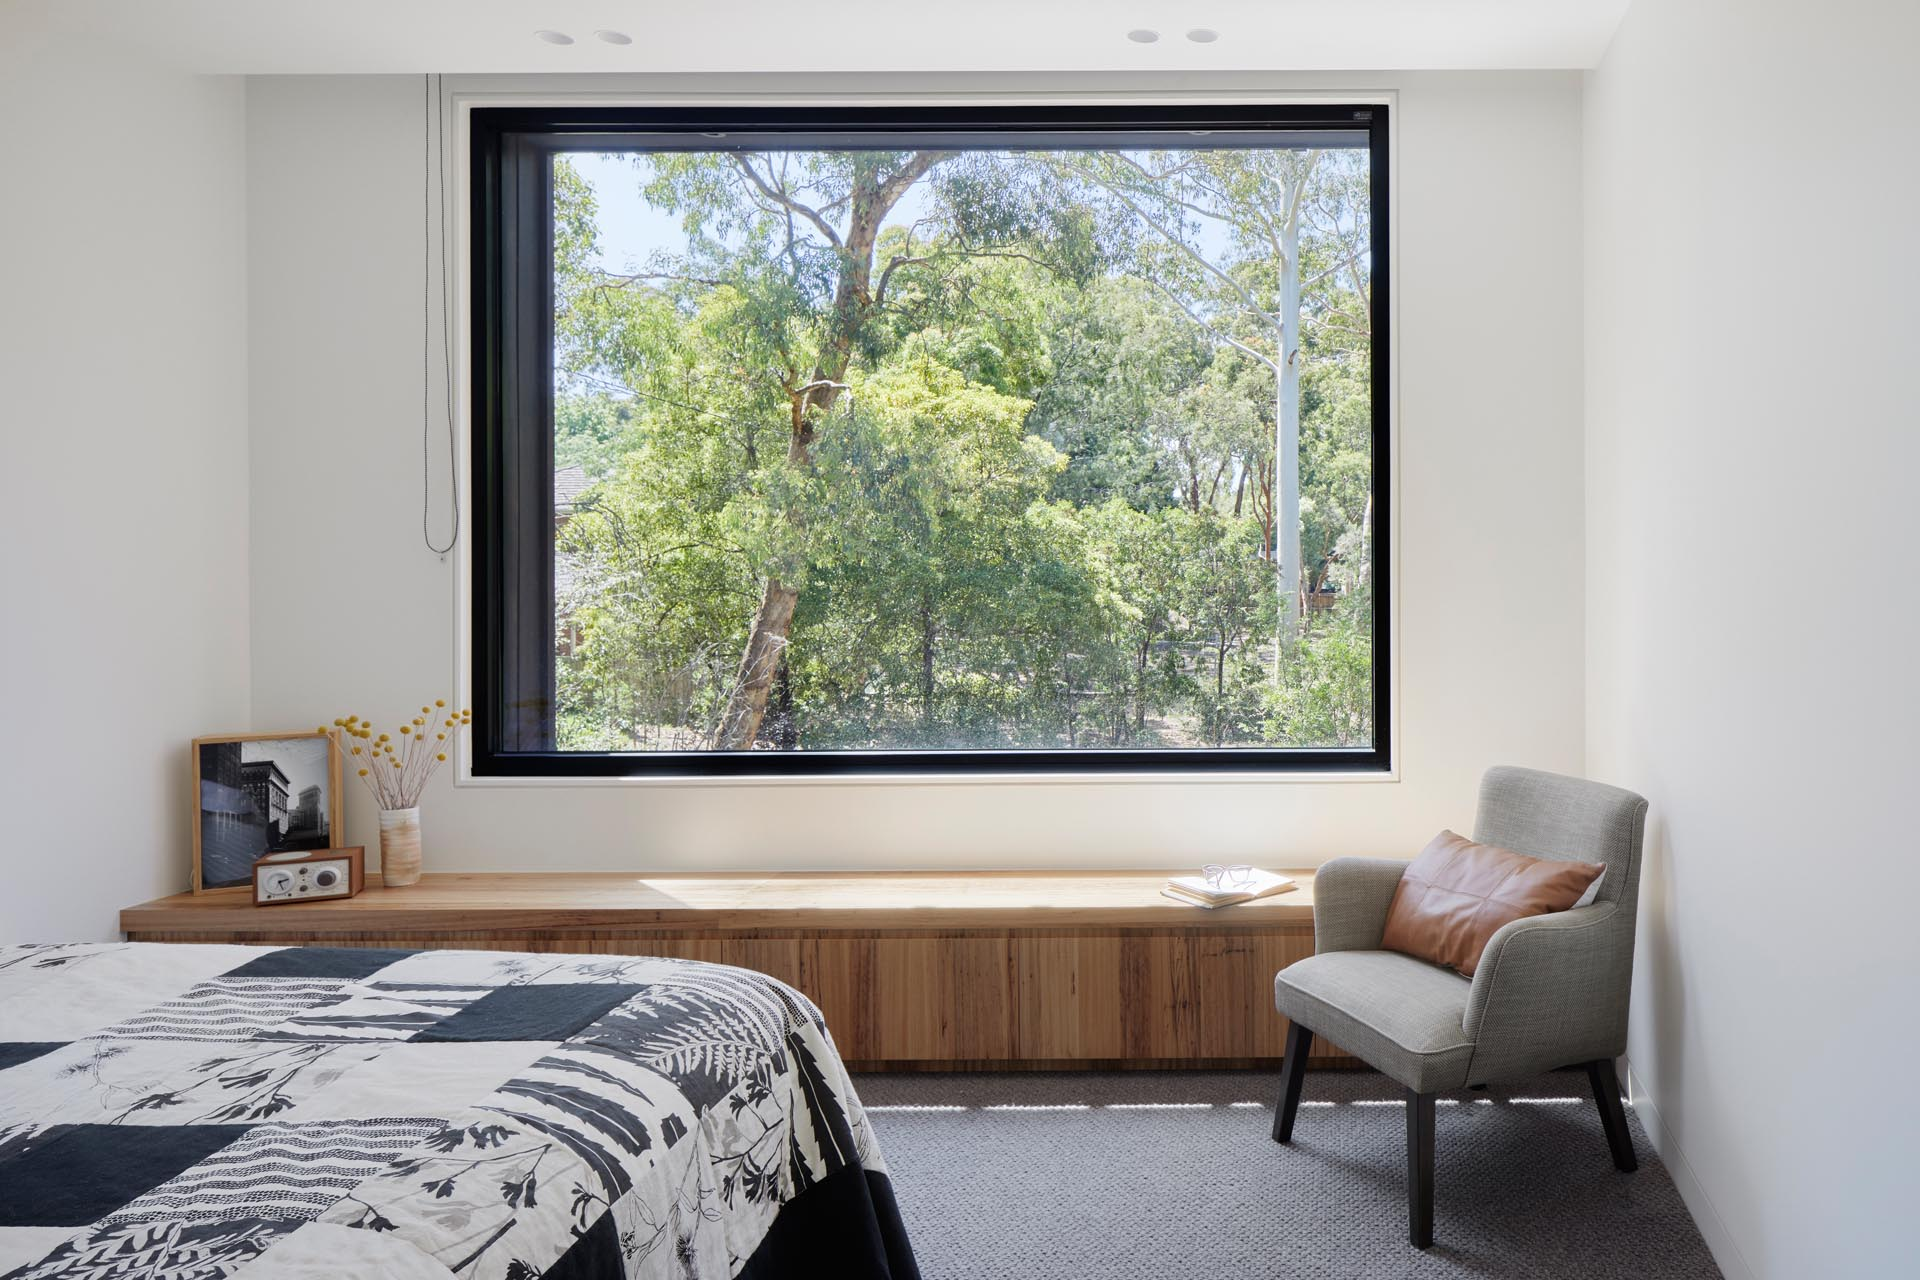 In this modern bedroom, a large window offers views of the gum trees outside, while plush wool carpet helps to absorb sound for privacy.